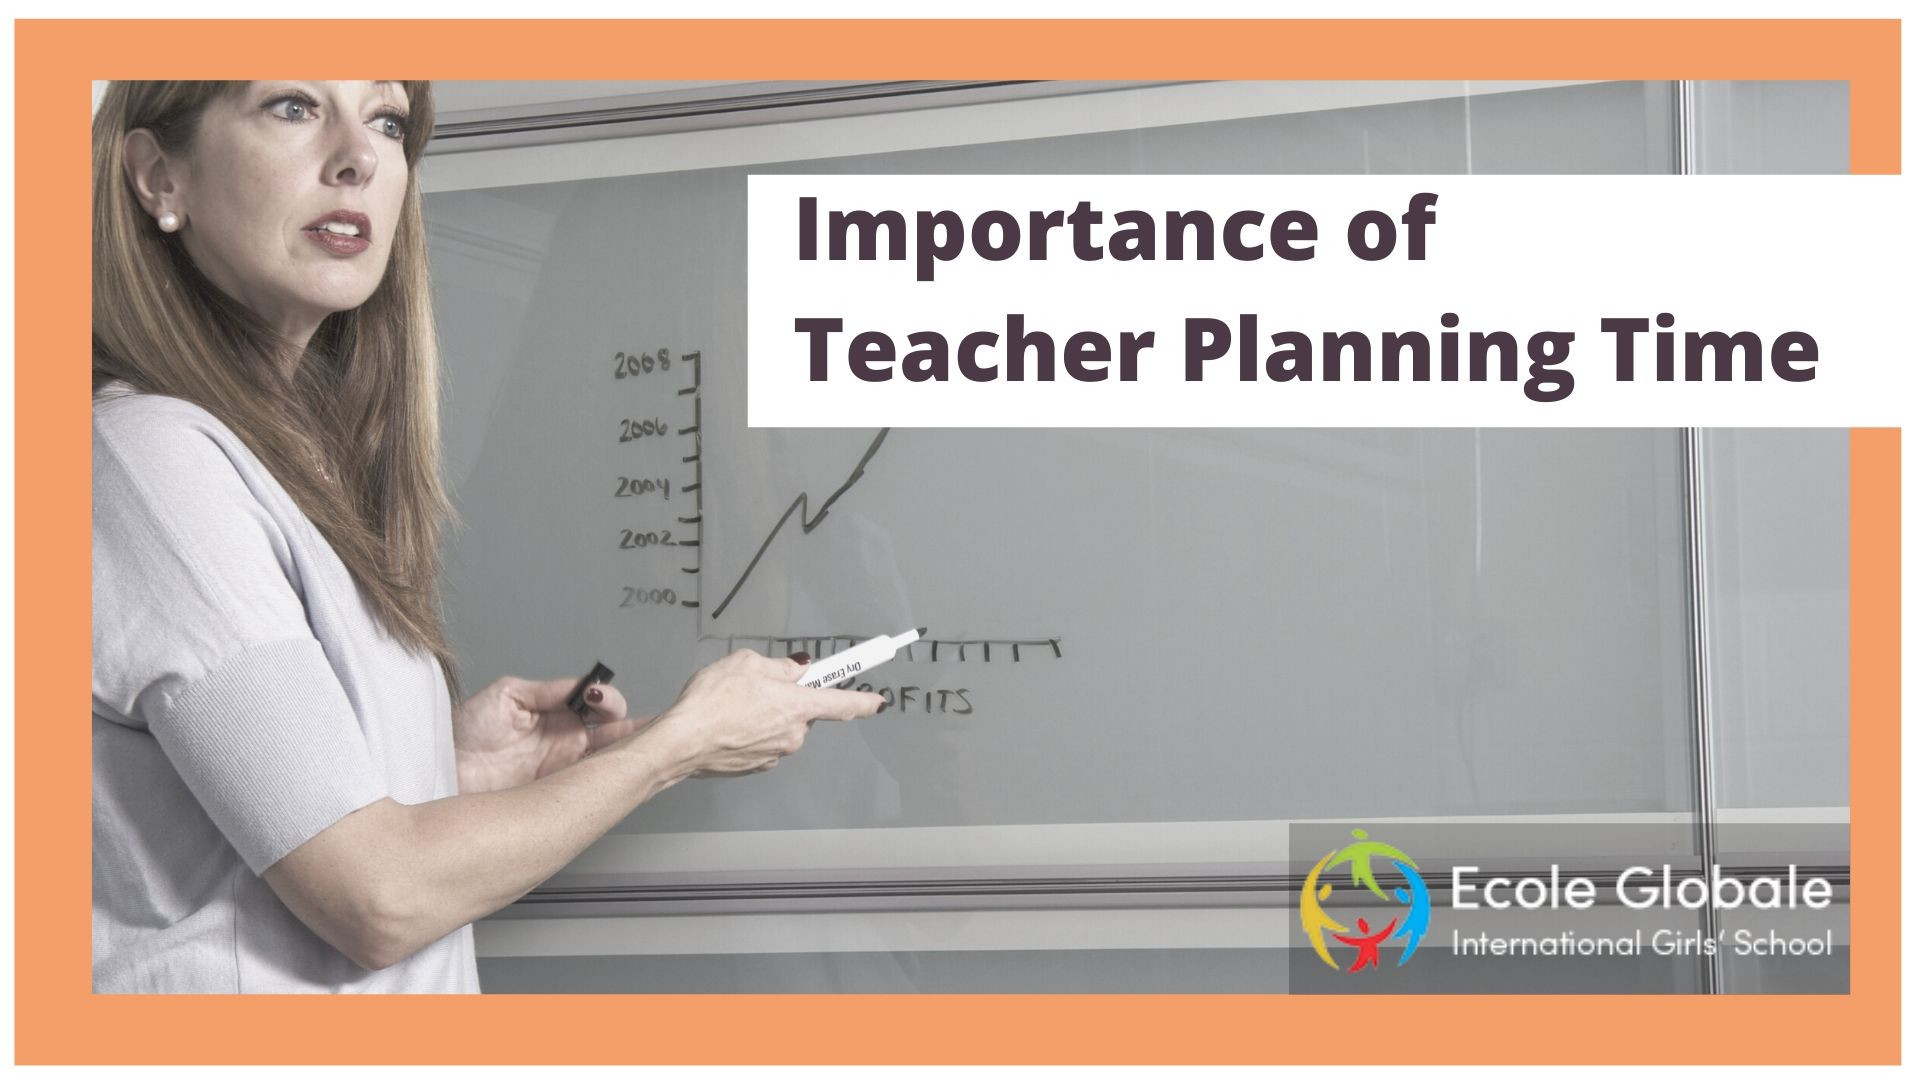 Importance of Teacher Planning Time